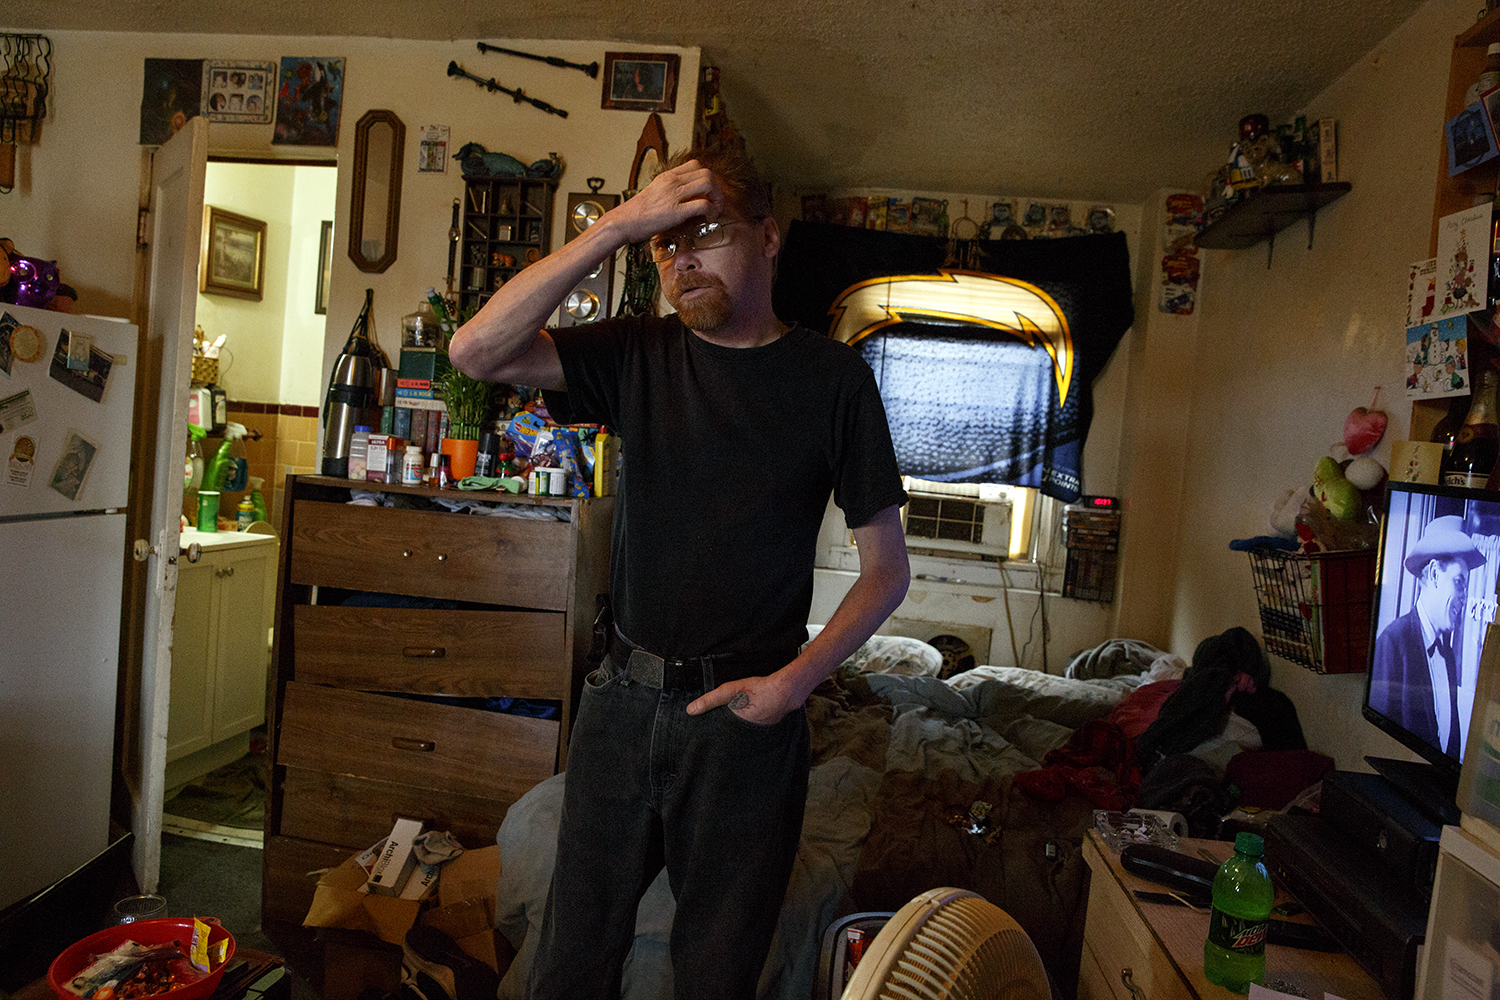 """Franklin Fite and his wife Karen Fliger have lived in a room at the Bel-Aire for nearly eight years. Everything they own is there with them.""""The only thing that belongs to the hotel is the bed,"""" Fite says."""